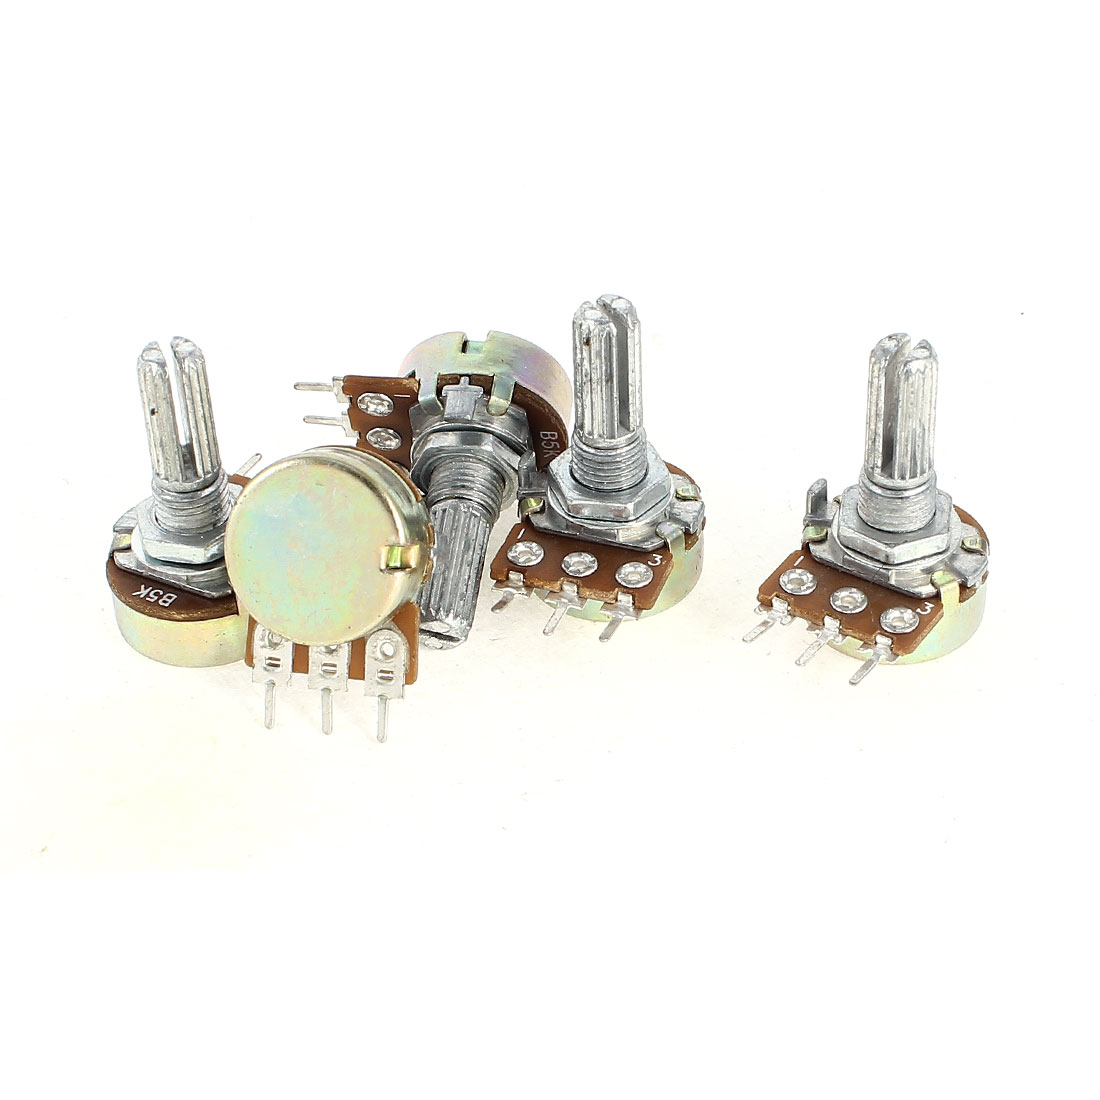 5 Pcs Top Adjustment Single Linear Knurled Shaft Pots Potentiometers 5K Ohm B5K